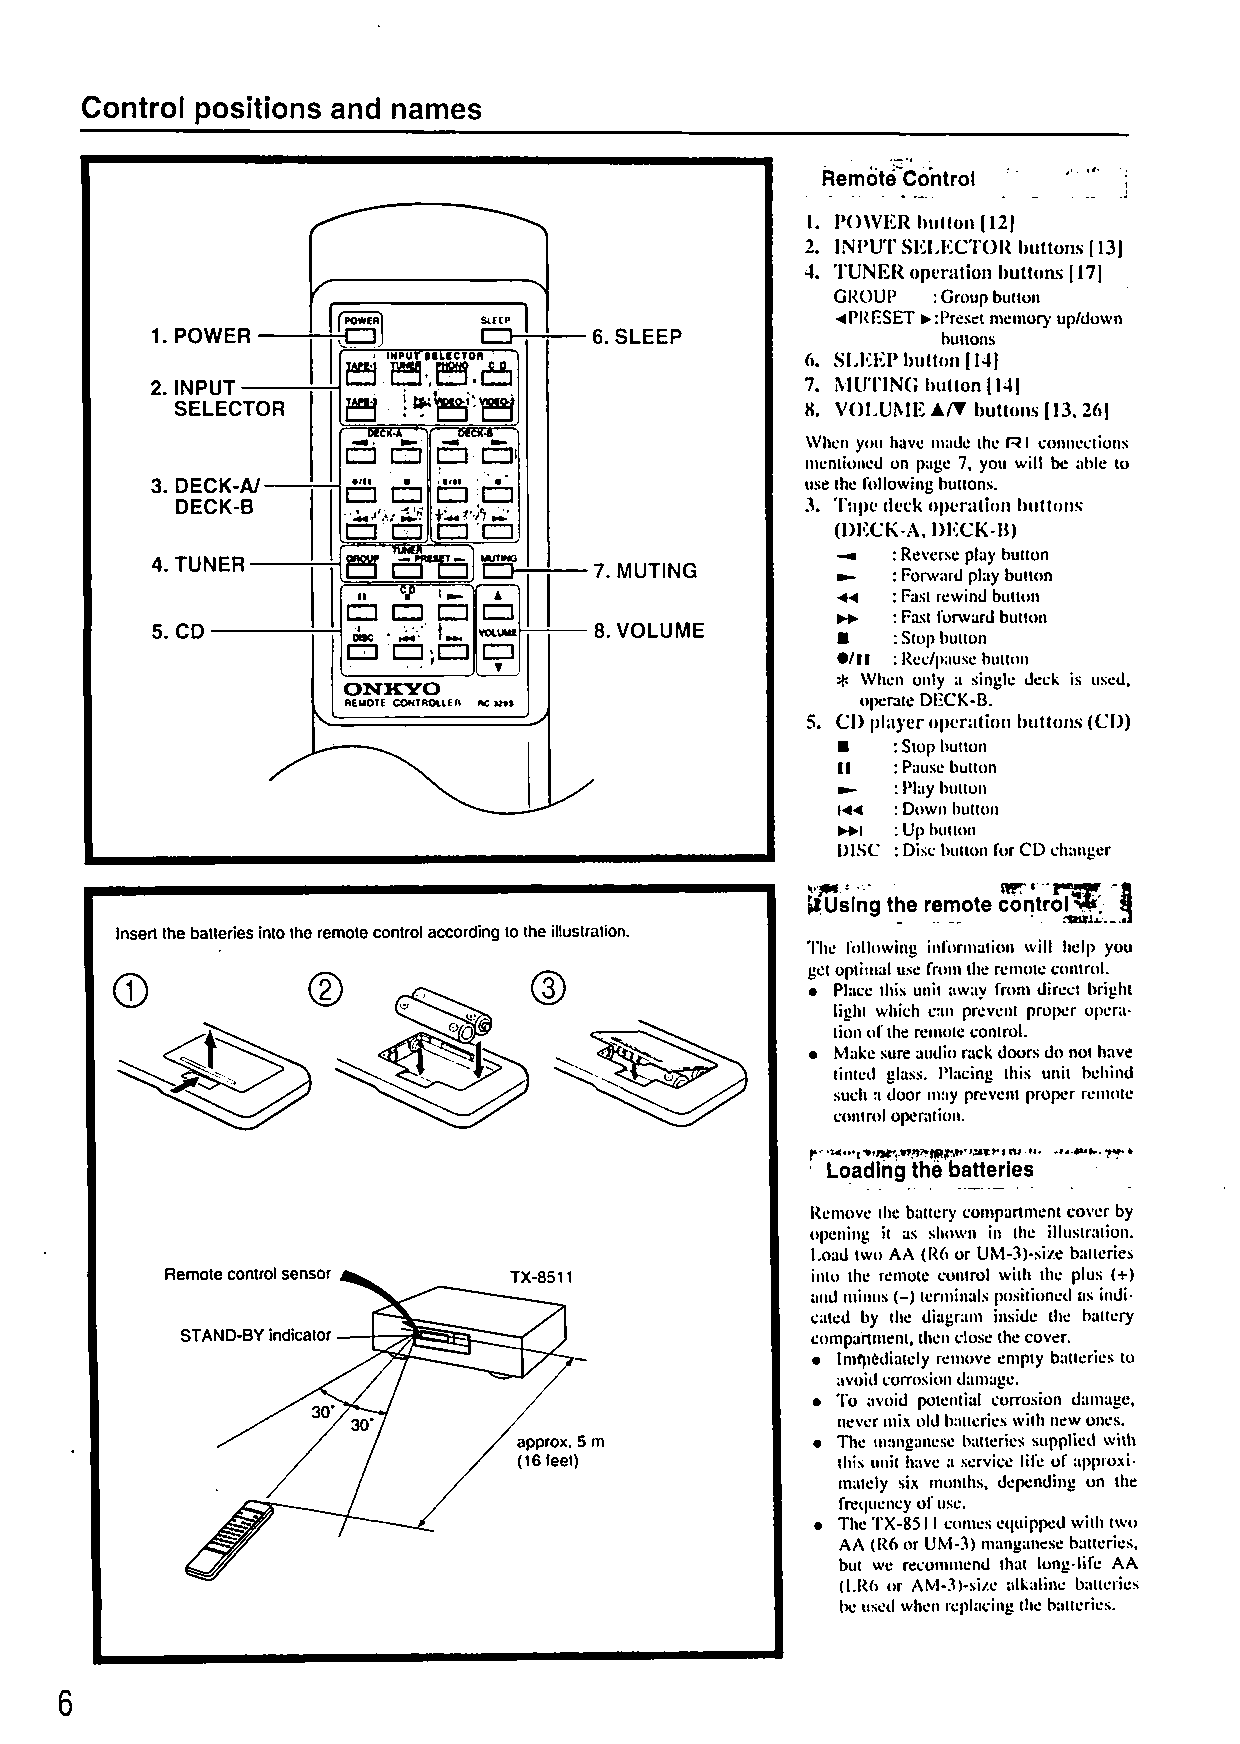 Onkyo TX-8511 Instruction Manual